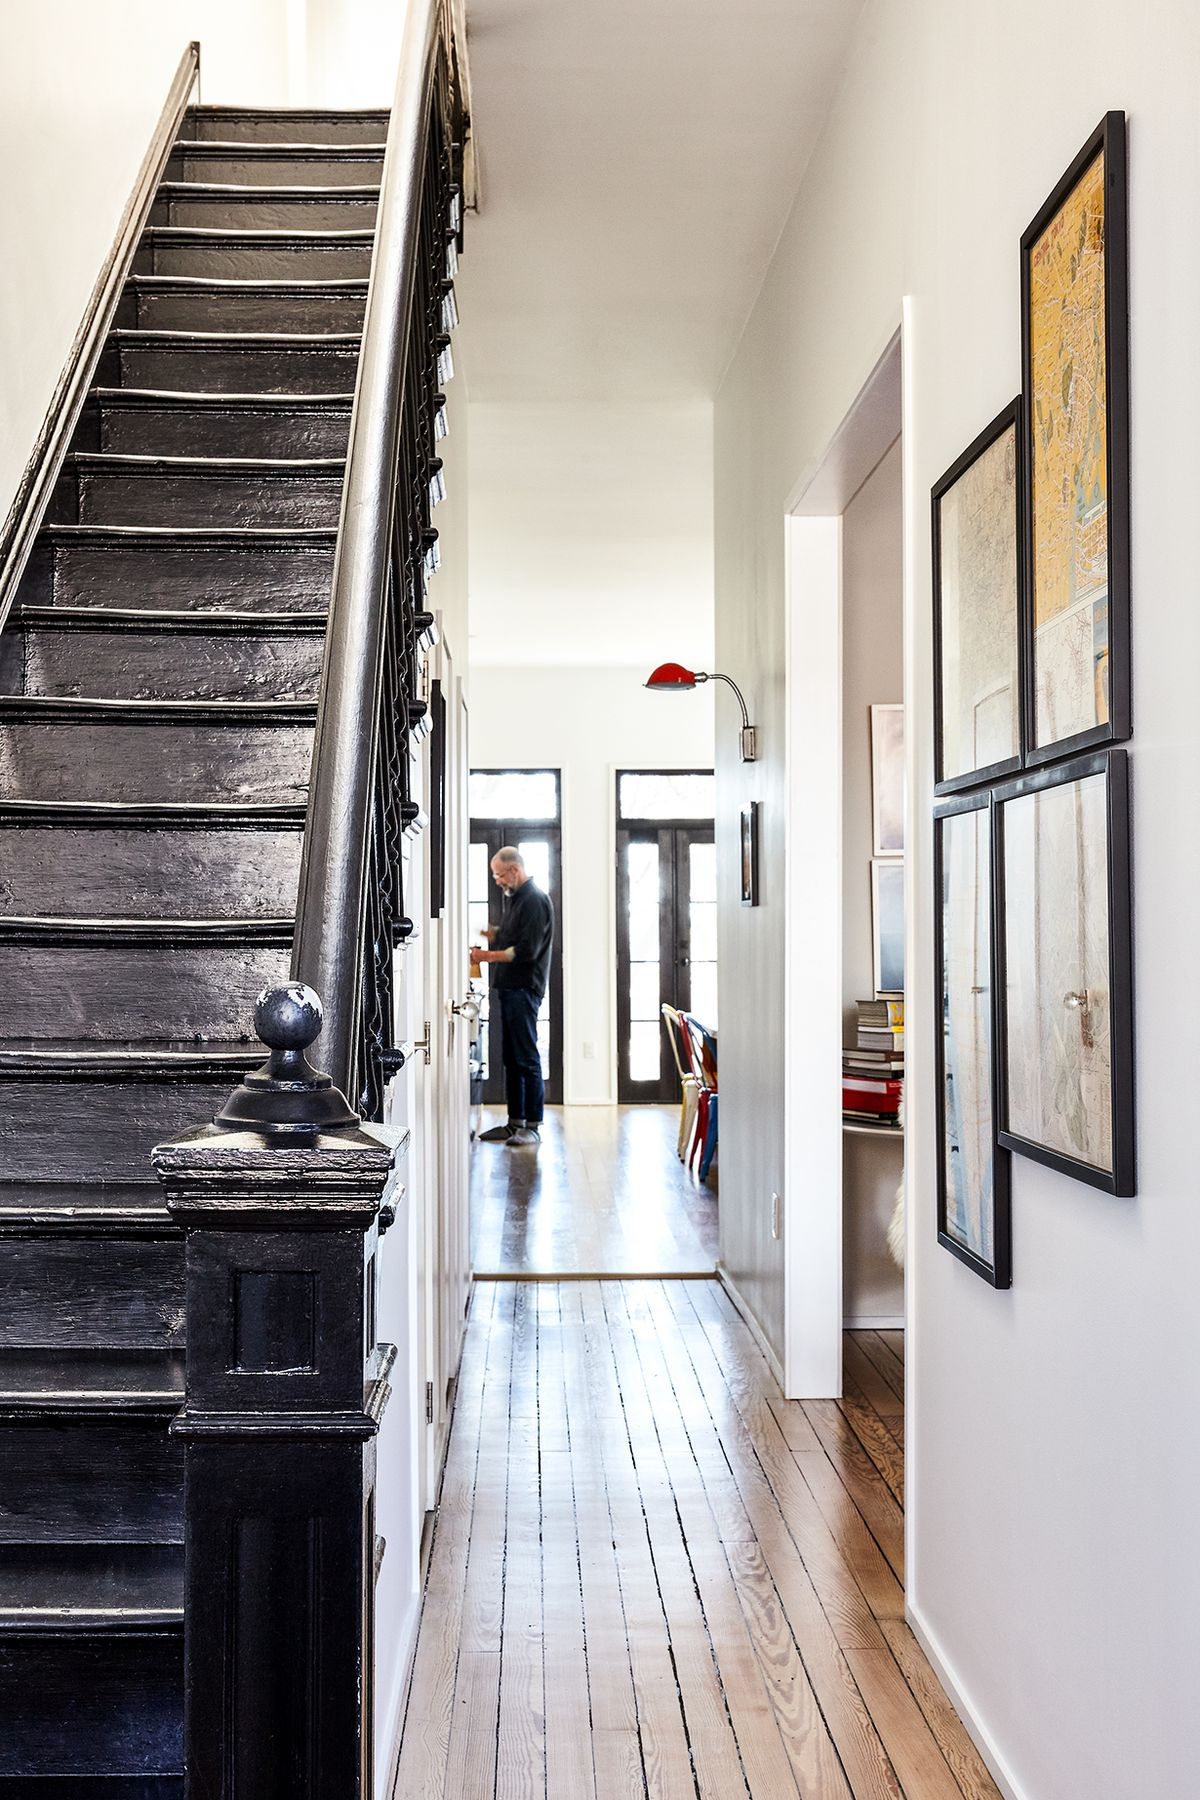 A hallway with a hardwood floor. There is a black staircase and bannister. There are multiple framed works of art on the white wall across from the staircase.